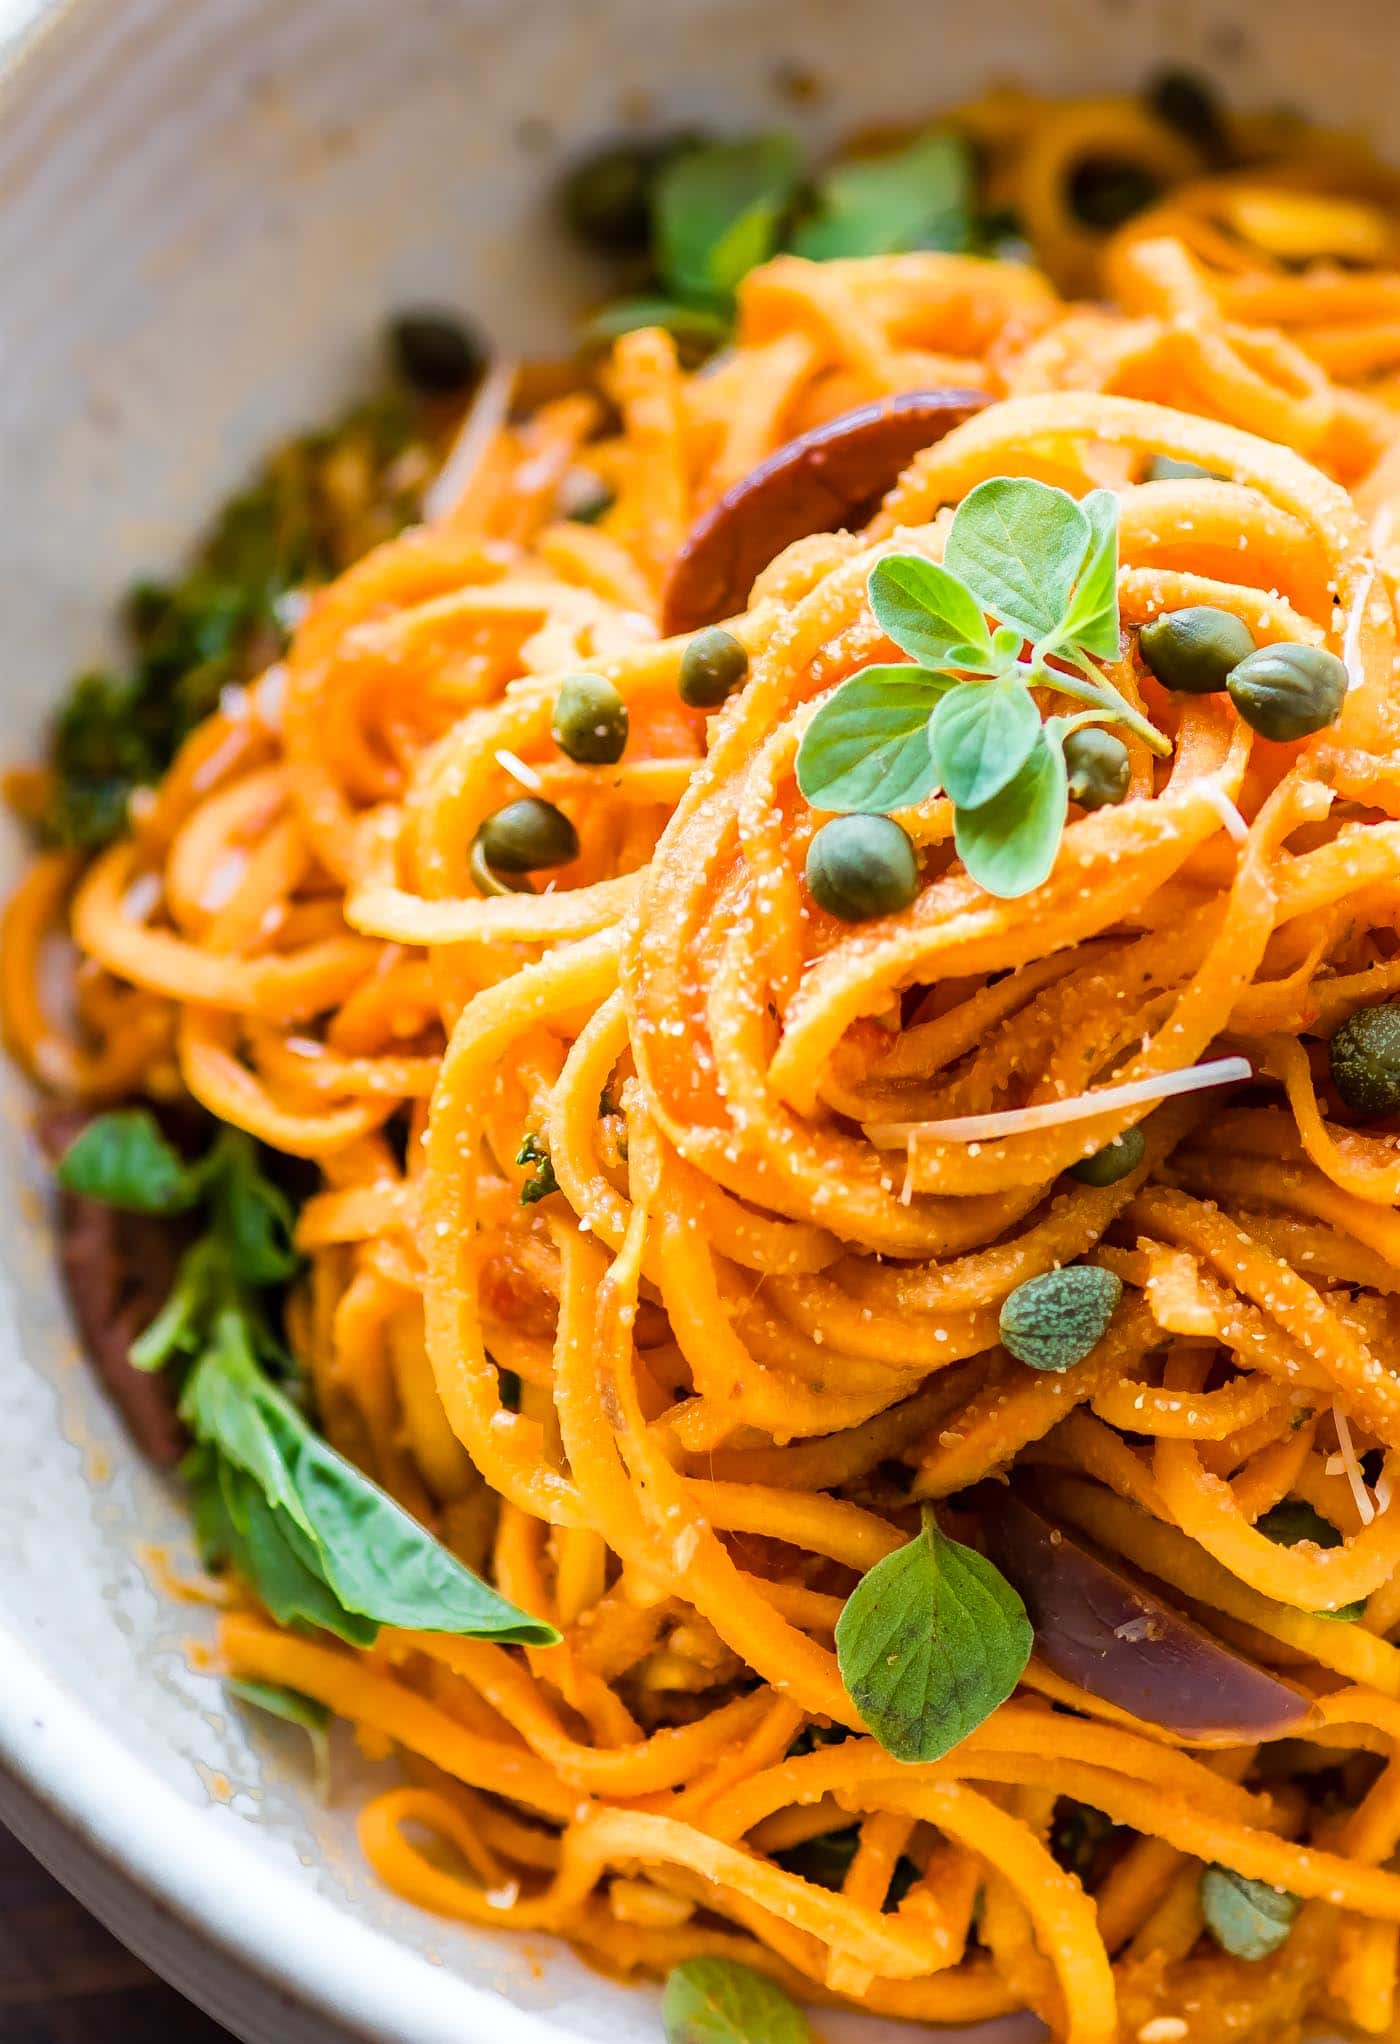 Sweet Potato Spaghetti made with spiralized sweet potatoes in zesty tomato sauce. Easy Italian Sweet Potato Spaghetti bowls that are quick, paleo, & vegan!